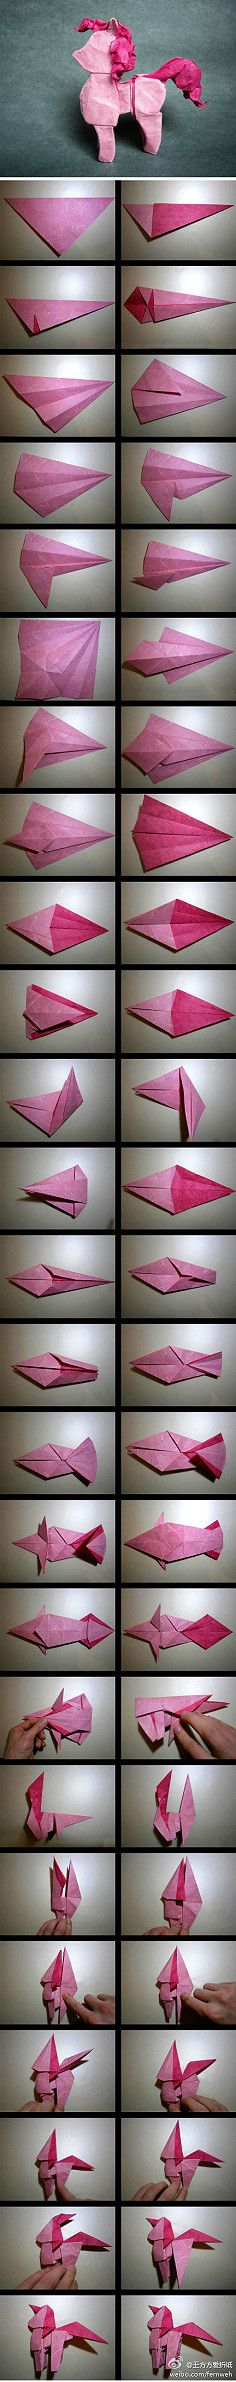 Pinkie Pie Origami Folding Process by mitanei on DeviantArt Origami And Kirigami, Origami Love, Origami Folding, Paper Crafts Origami, Diy Paper, Oragami, Tissue Paper, Diagrammes Origami, Origami Tutorial